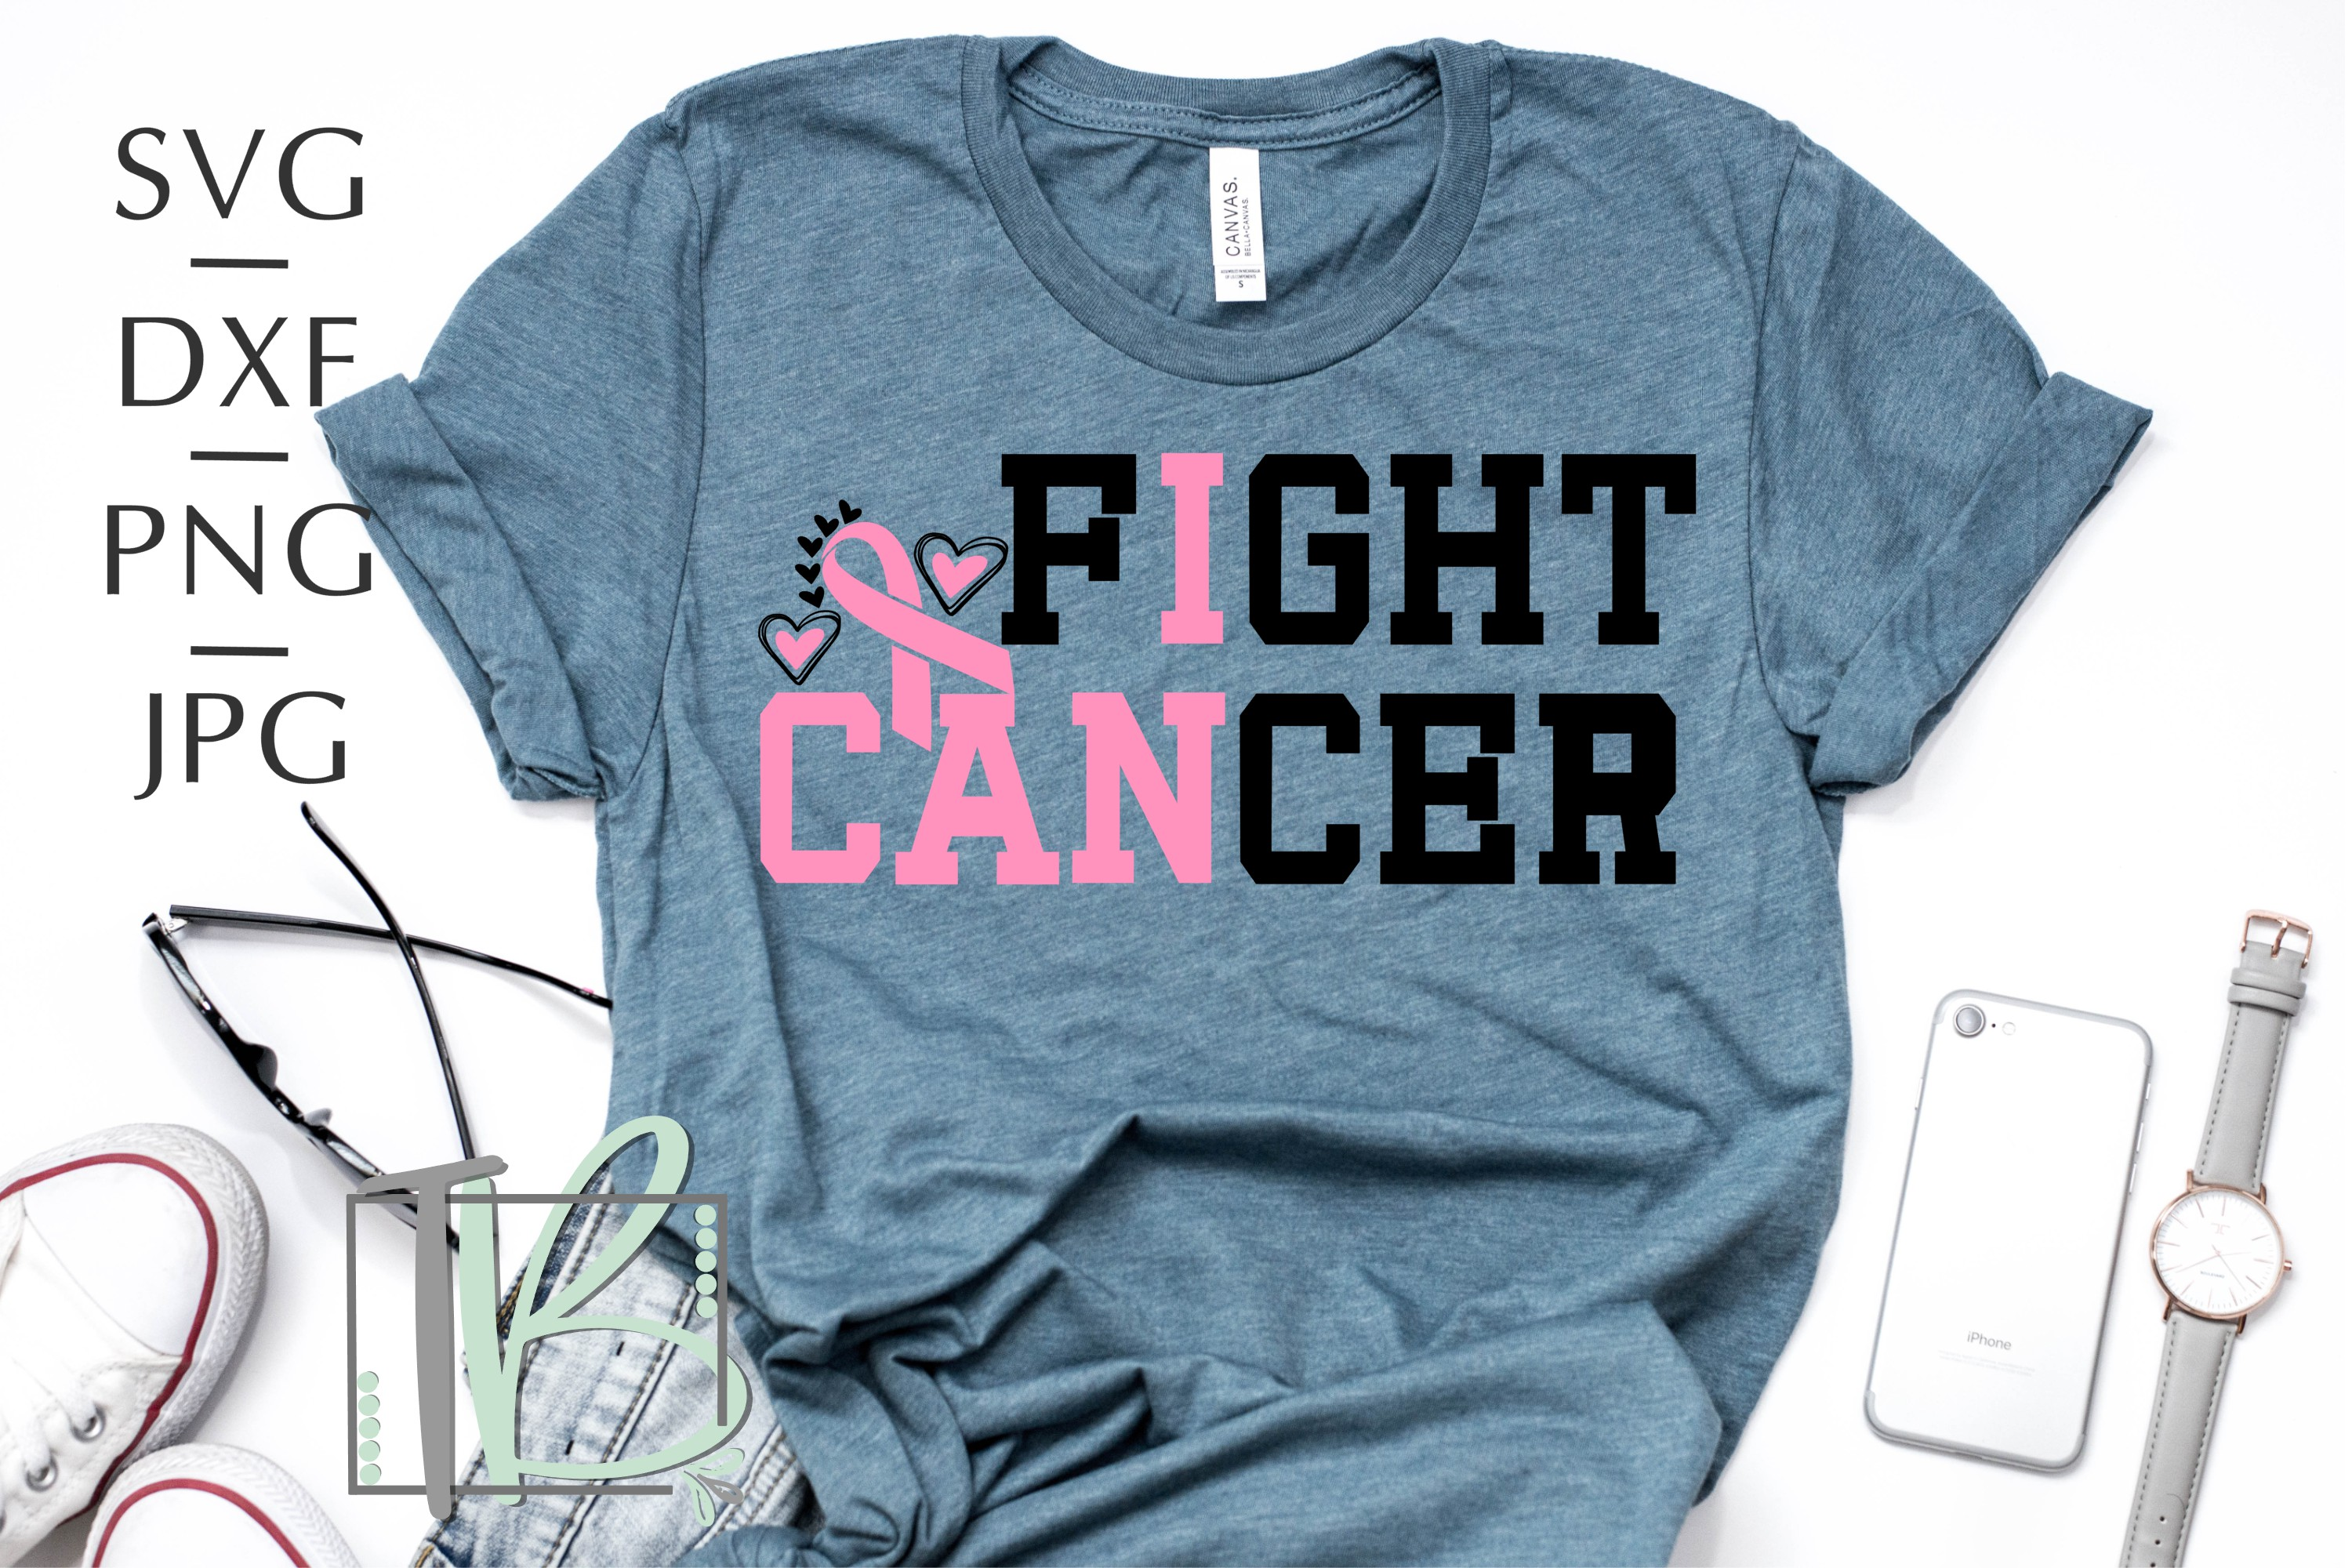 Breast Cancer SVG, I Can Fight Cancer SVG example image 1